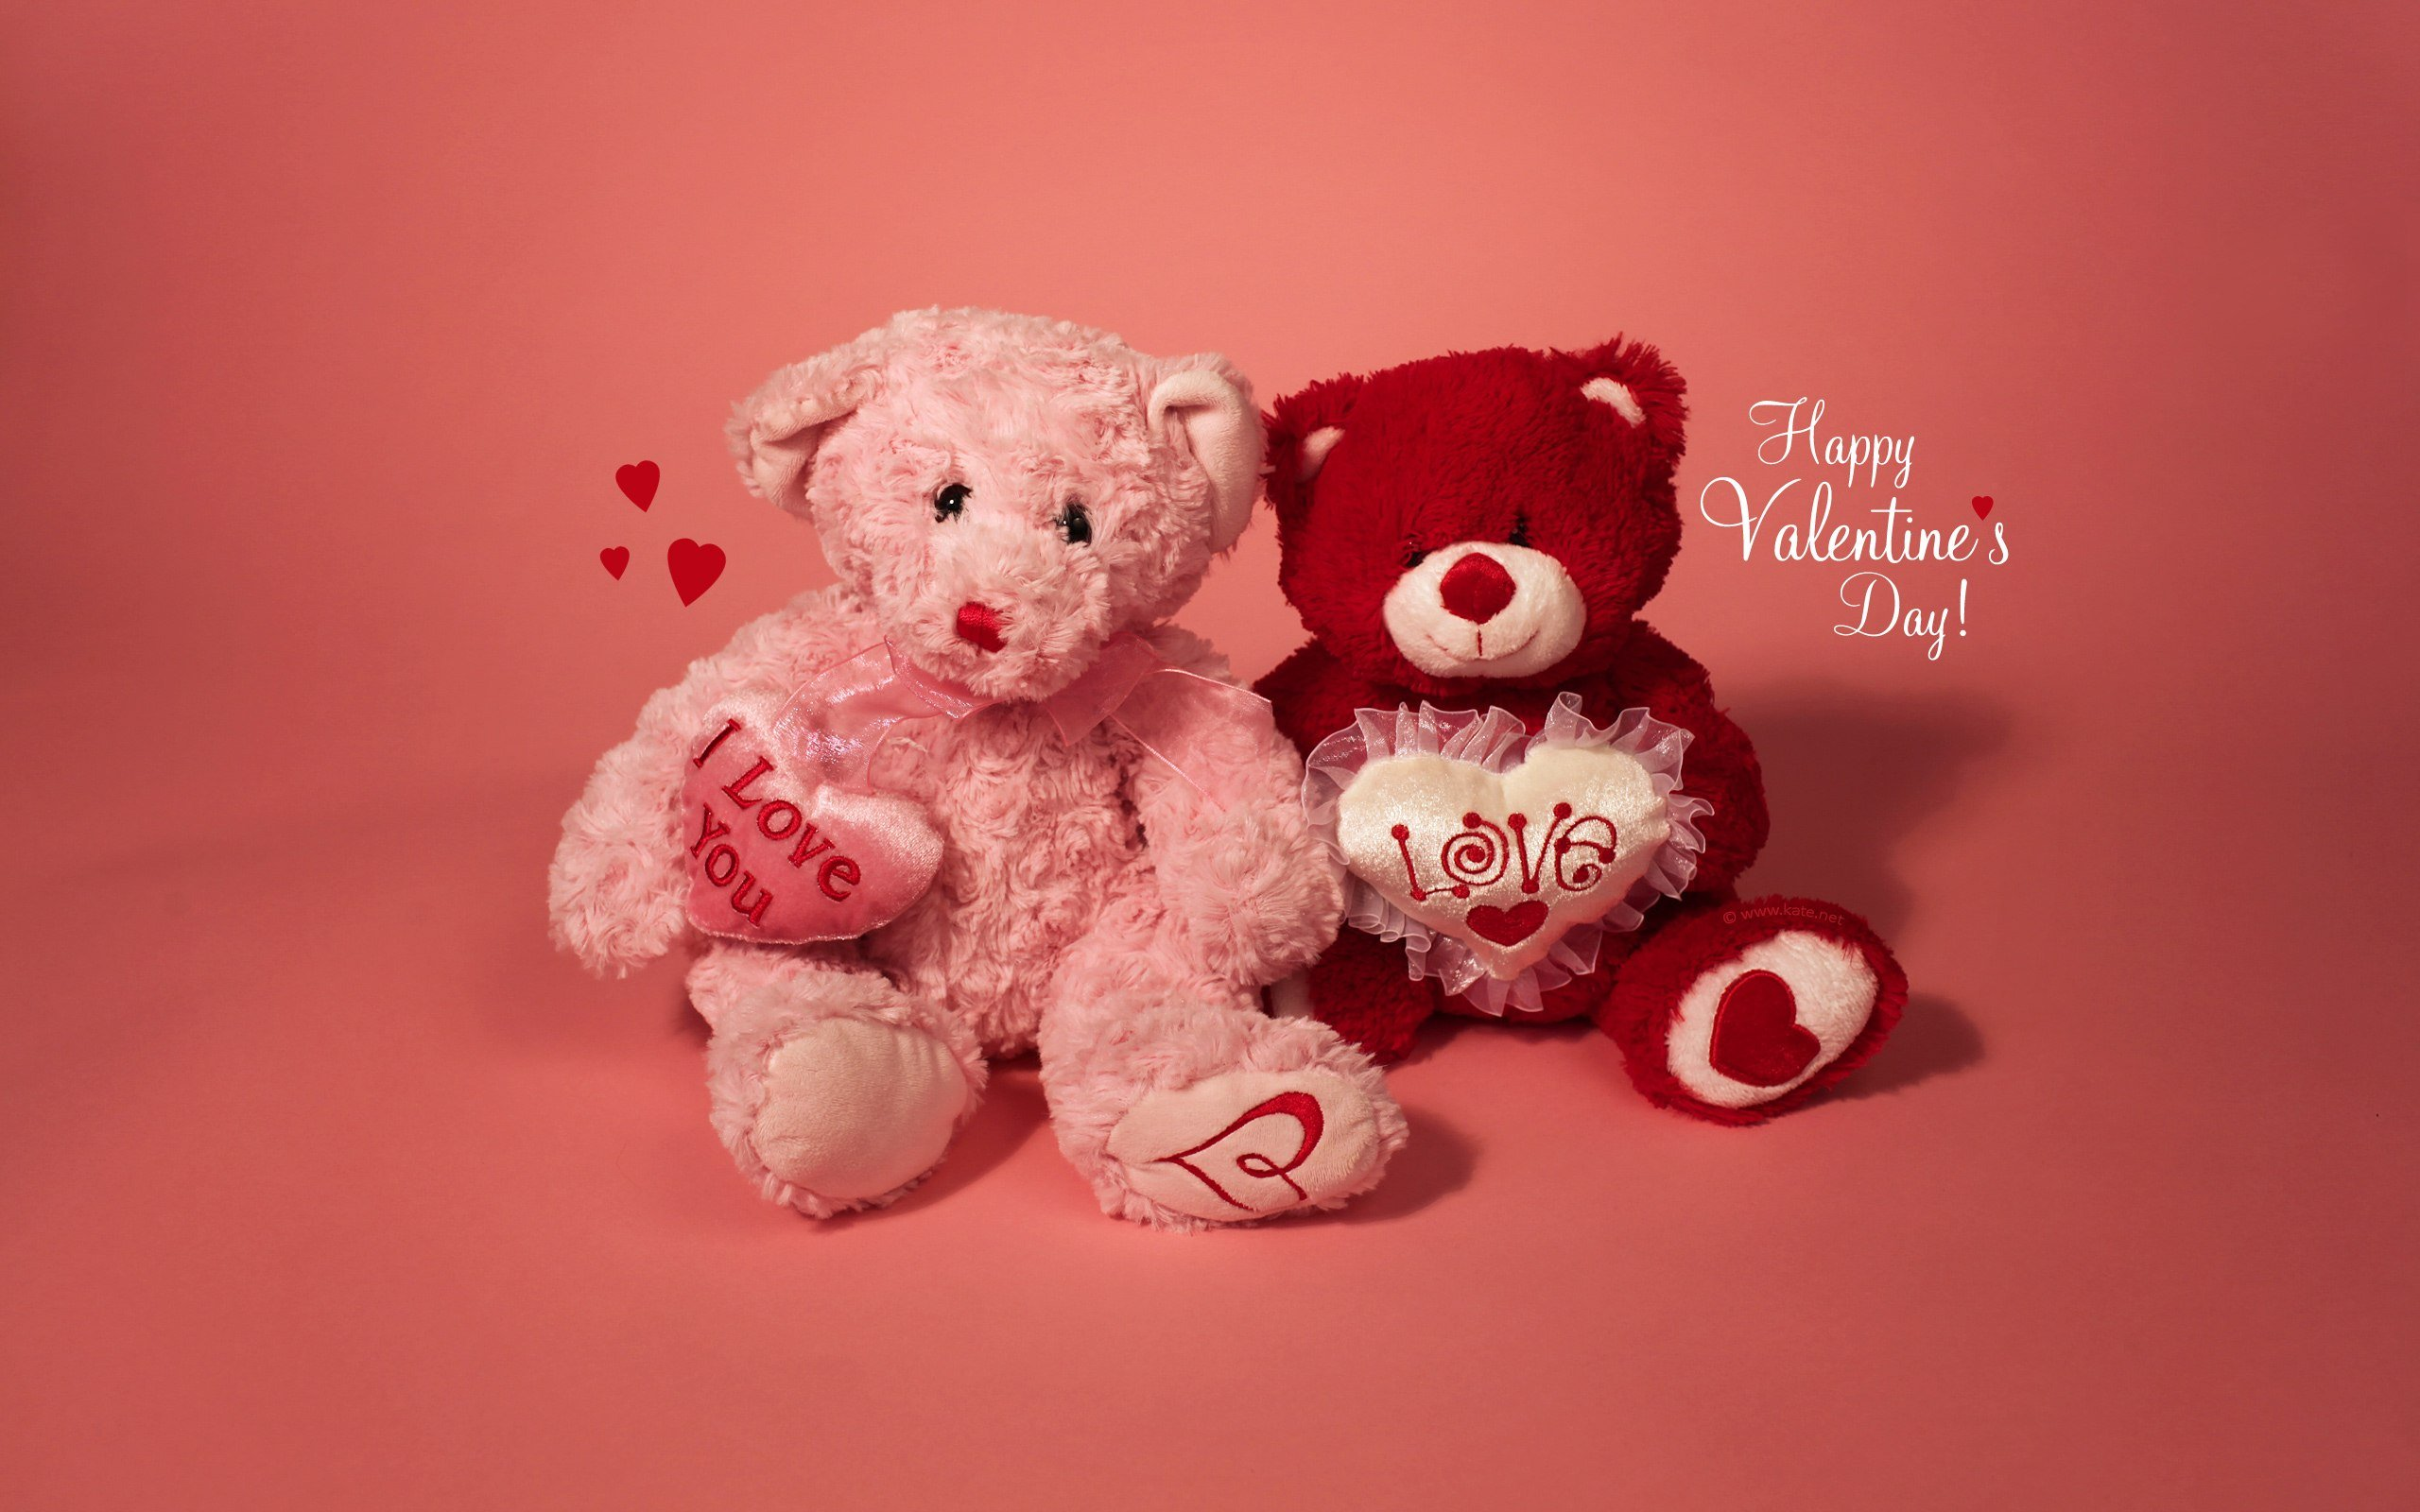 VALENTINES DAY mood love holiday valentine heart teddy bear